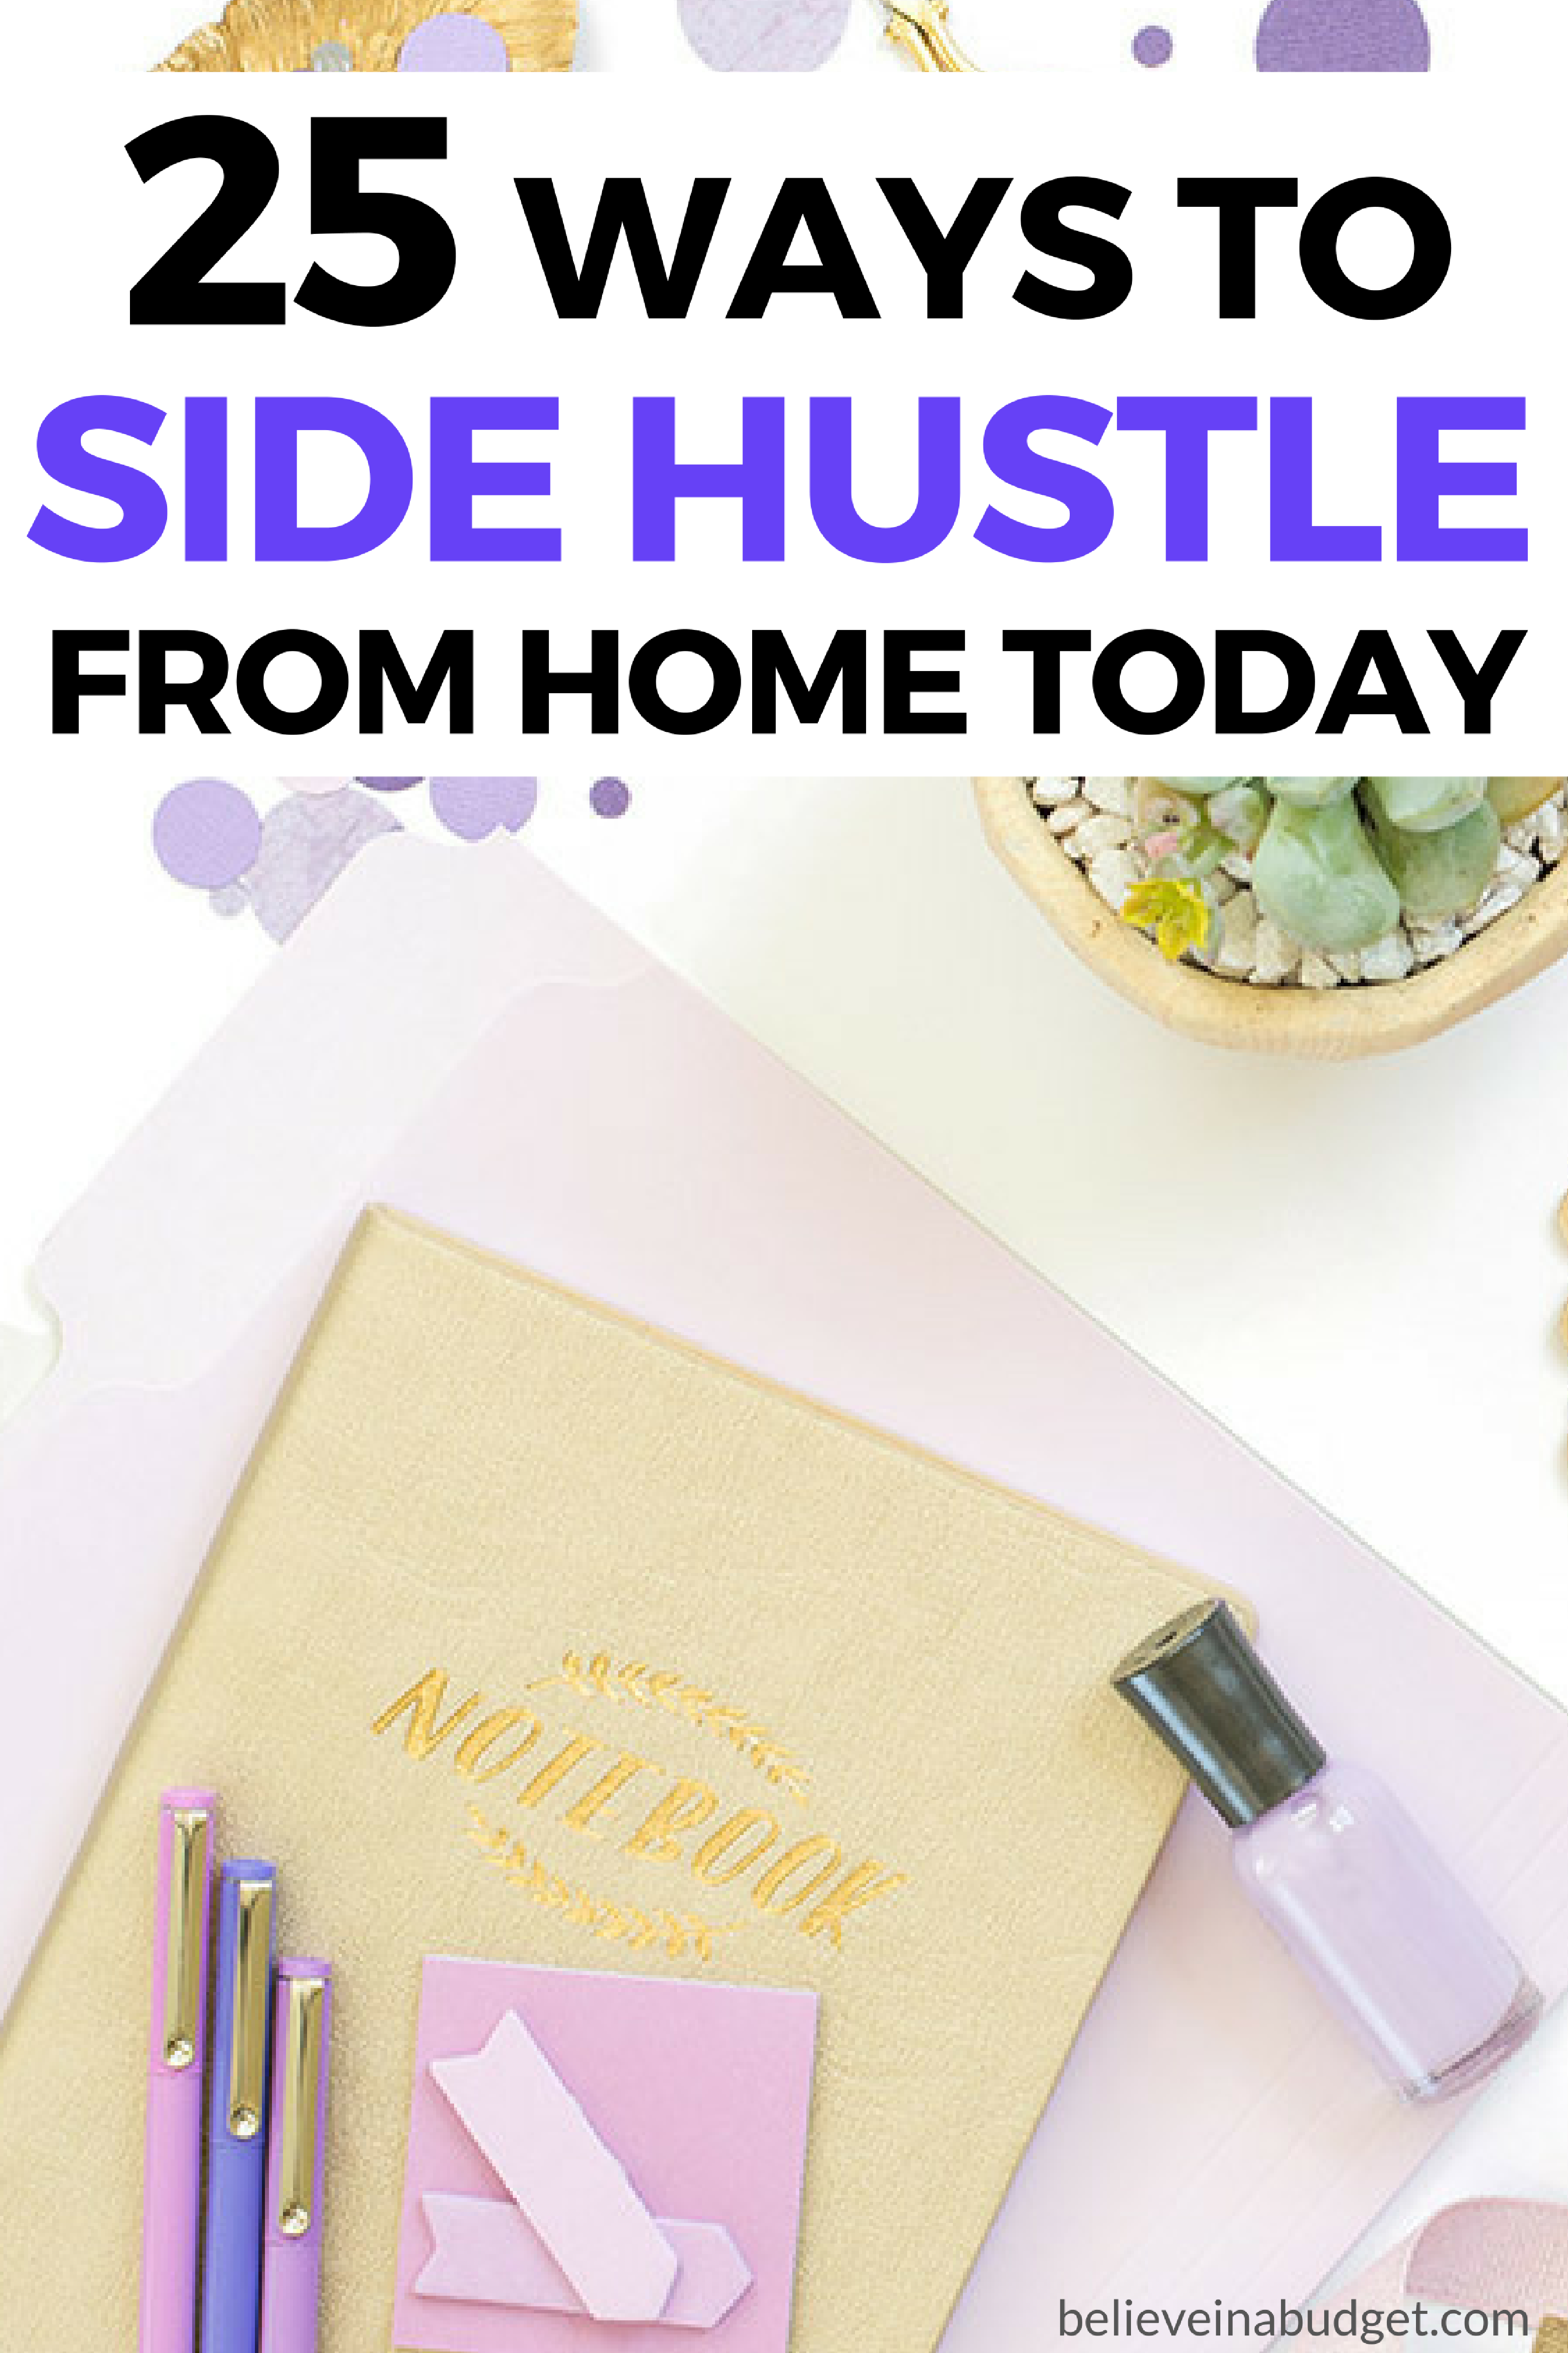 A side hustle is a great way to make money. You can side hustle from home and make great extra income! Here are 25 ways to side hustle from home today!